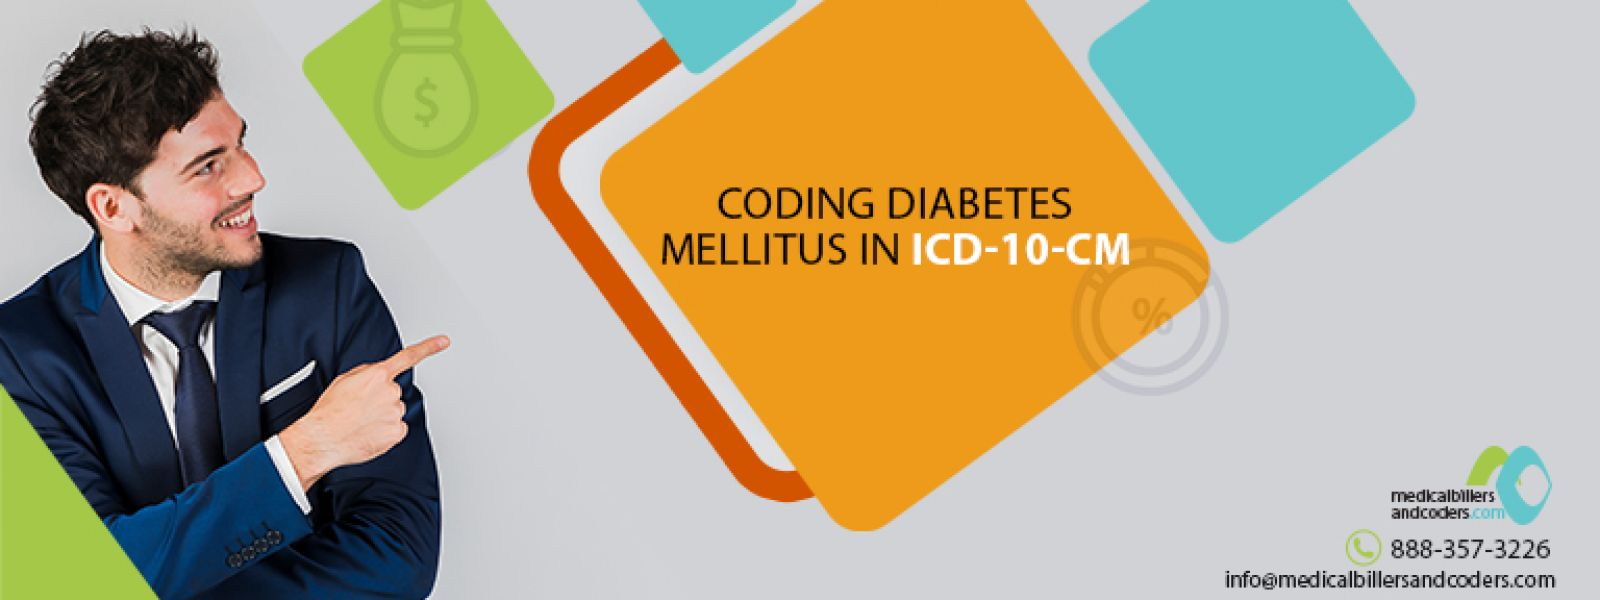 Coding Diabetes Mellitus in ICD-10-CM